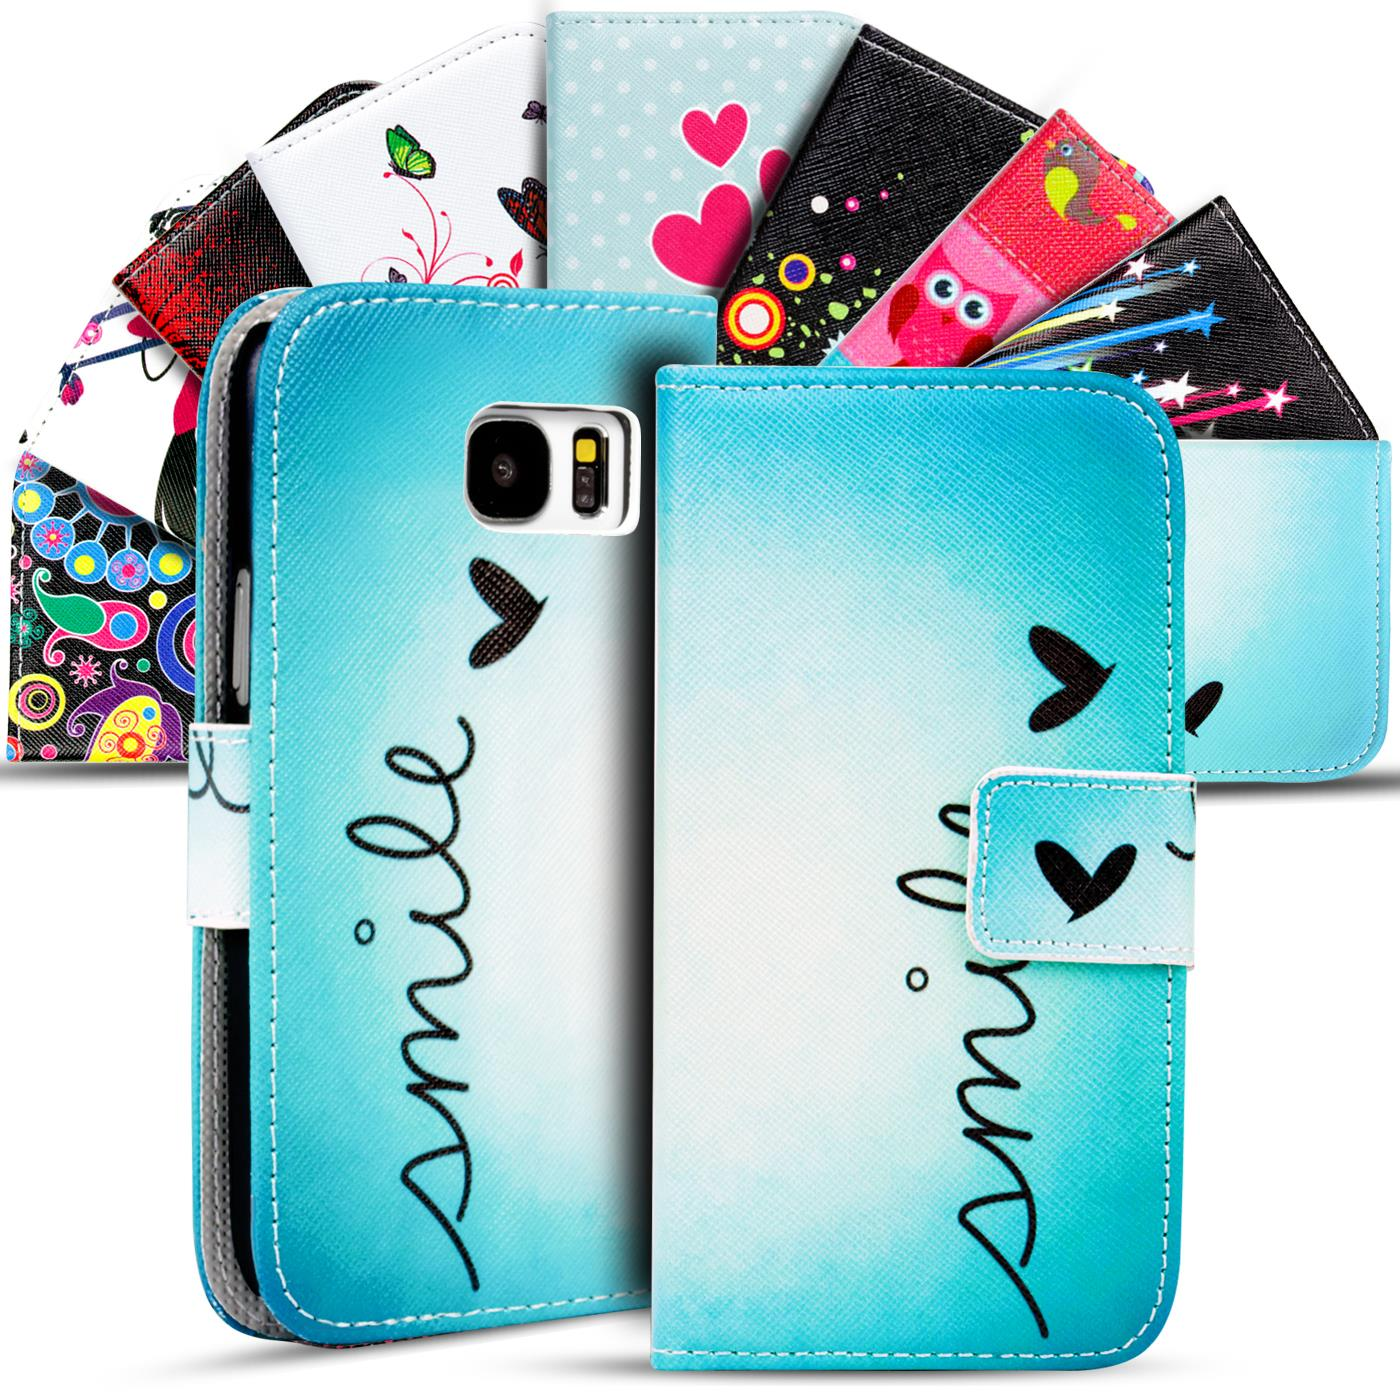 Design-Book-Wallet-Case-for-Samsung-Galaxy-S7-Edge-PU-Leather-Flip-Cover-Holder